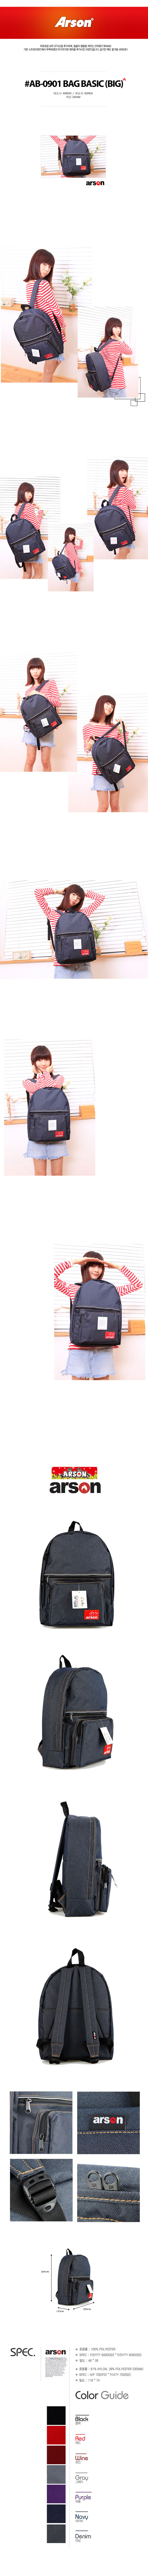 [ ARSON ] AB-0901 (Denim)/Backpack School Bag